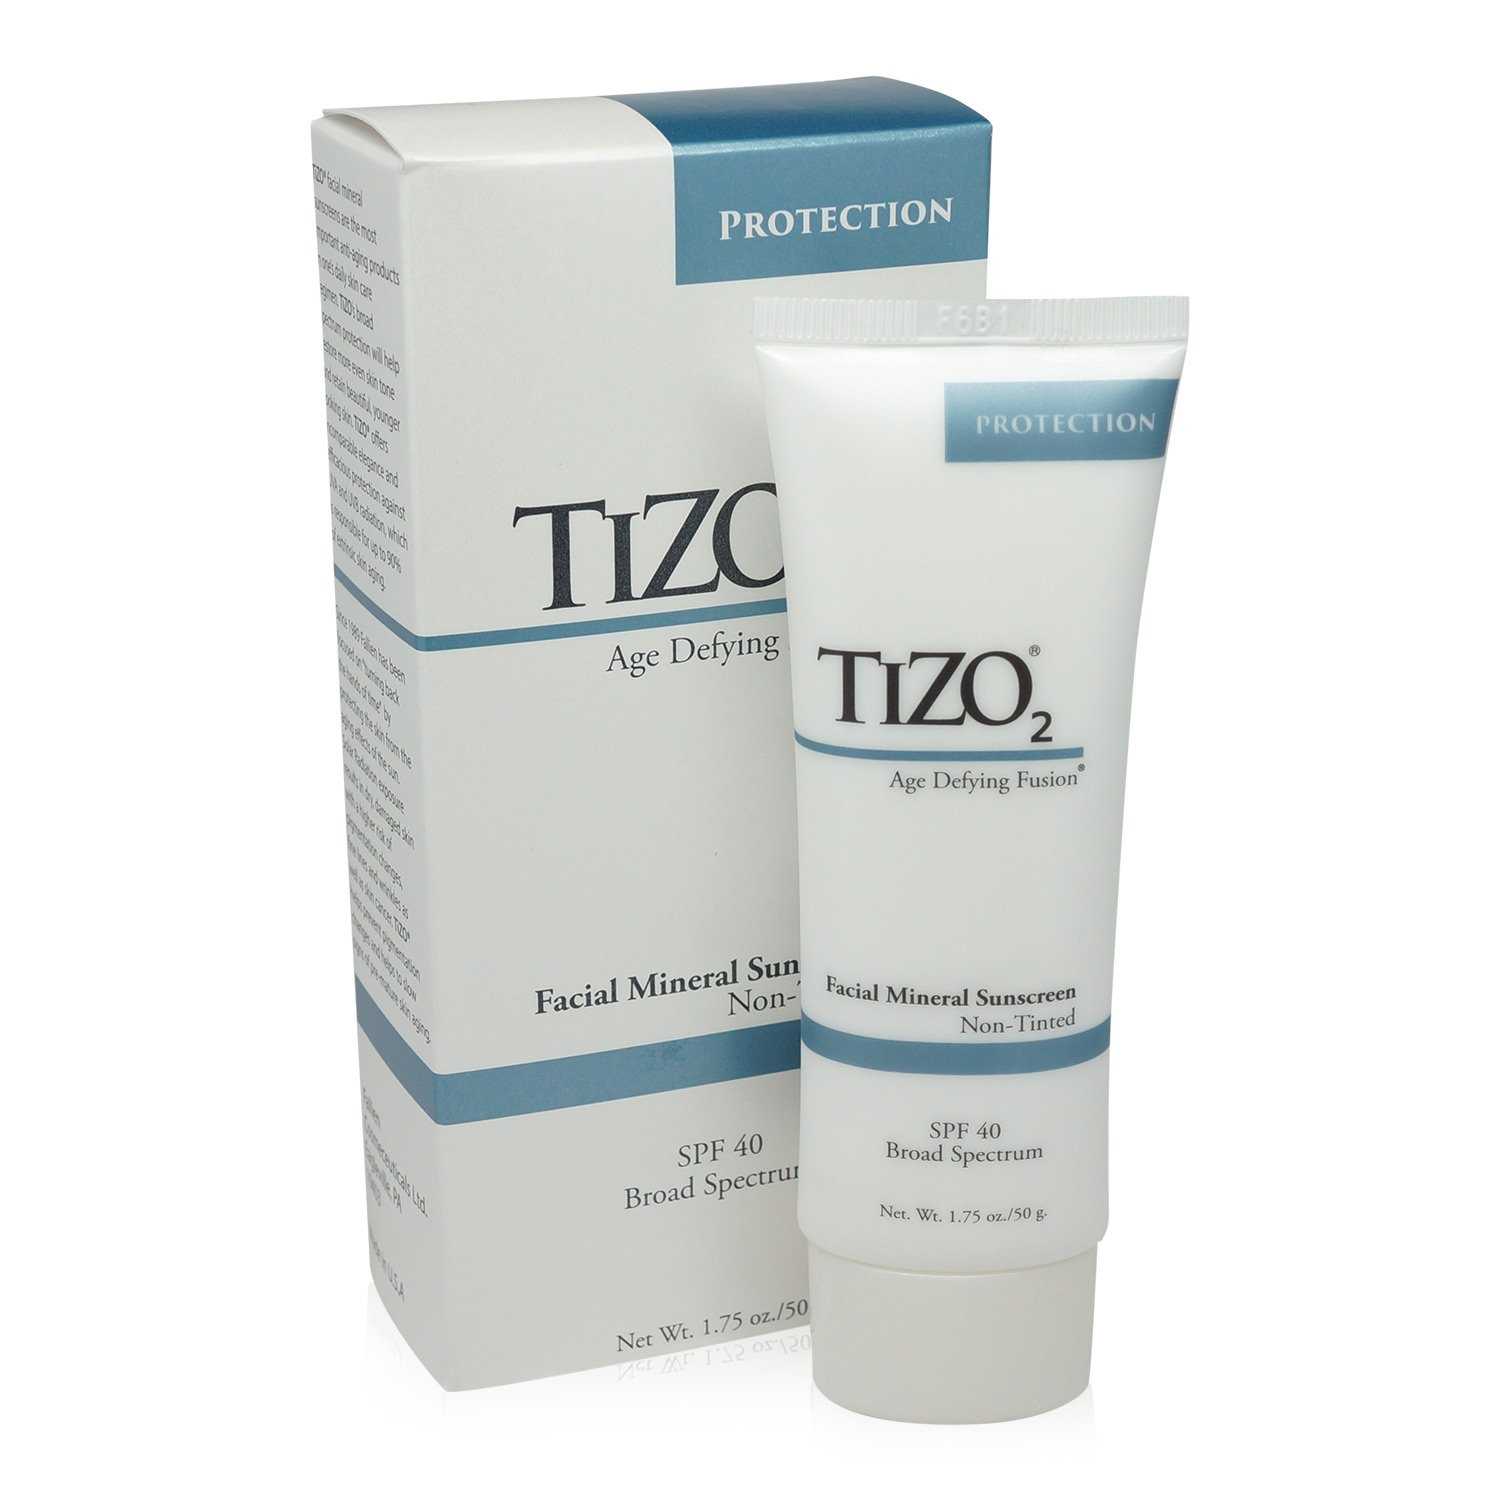 Solar Protection Formula TIZO 2 Facial Mineral Fusion Broad Spectrum Sunscreen SPF 40 - For Light Skin Tones by Solar Protection Formula